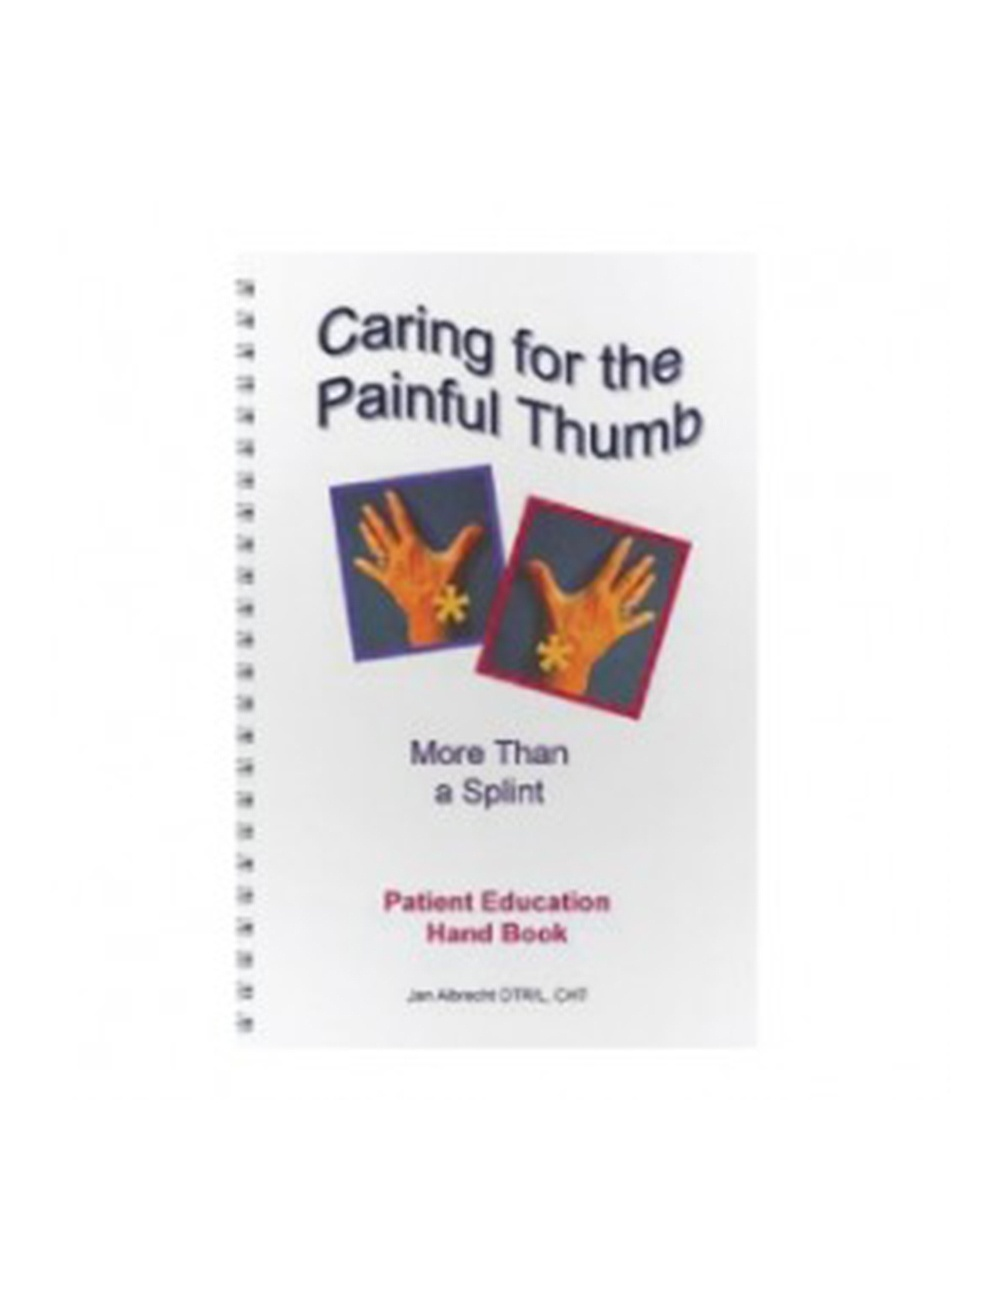 Caring for the Painful Thumb